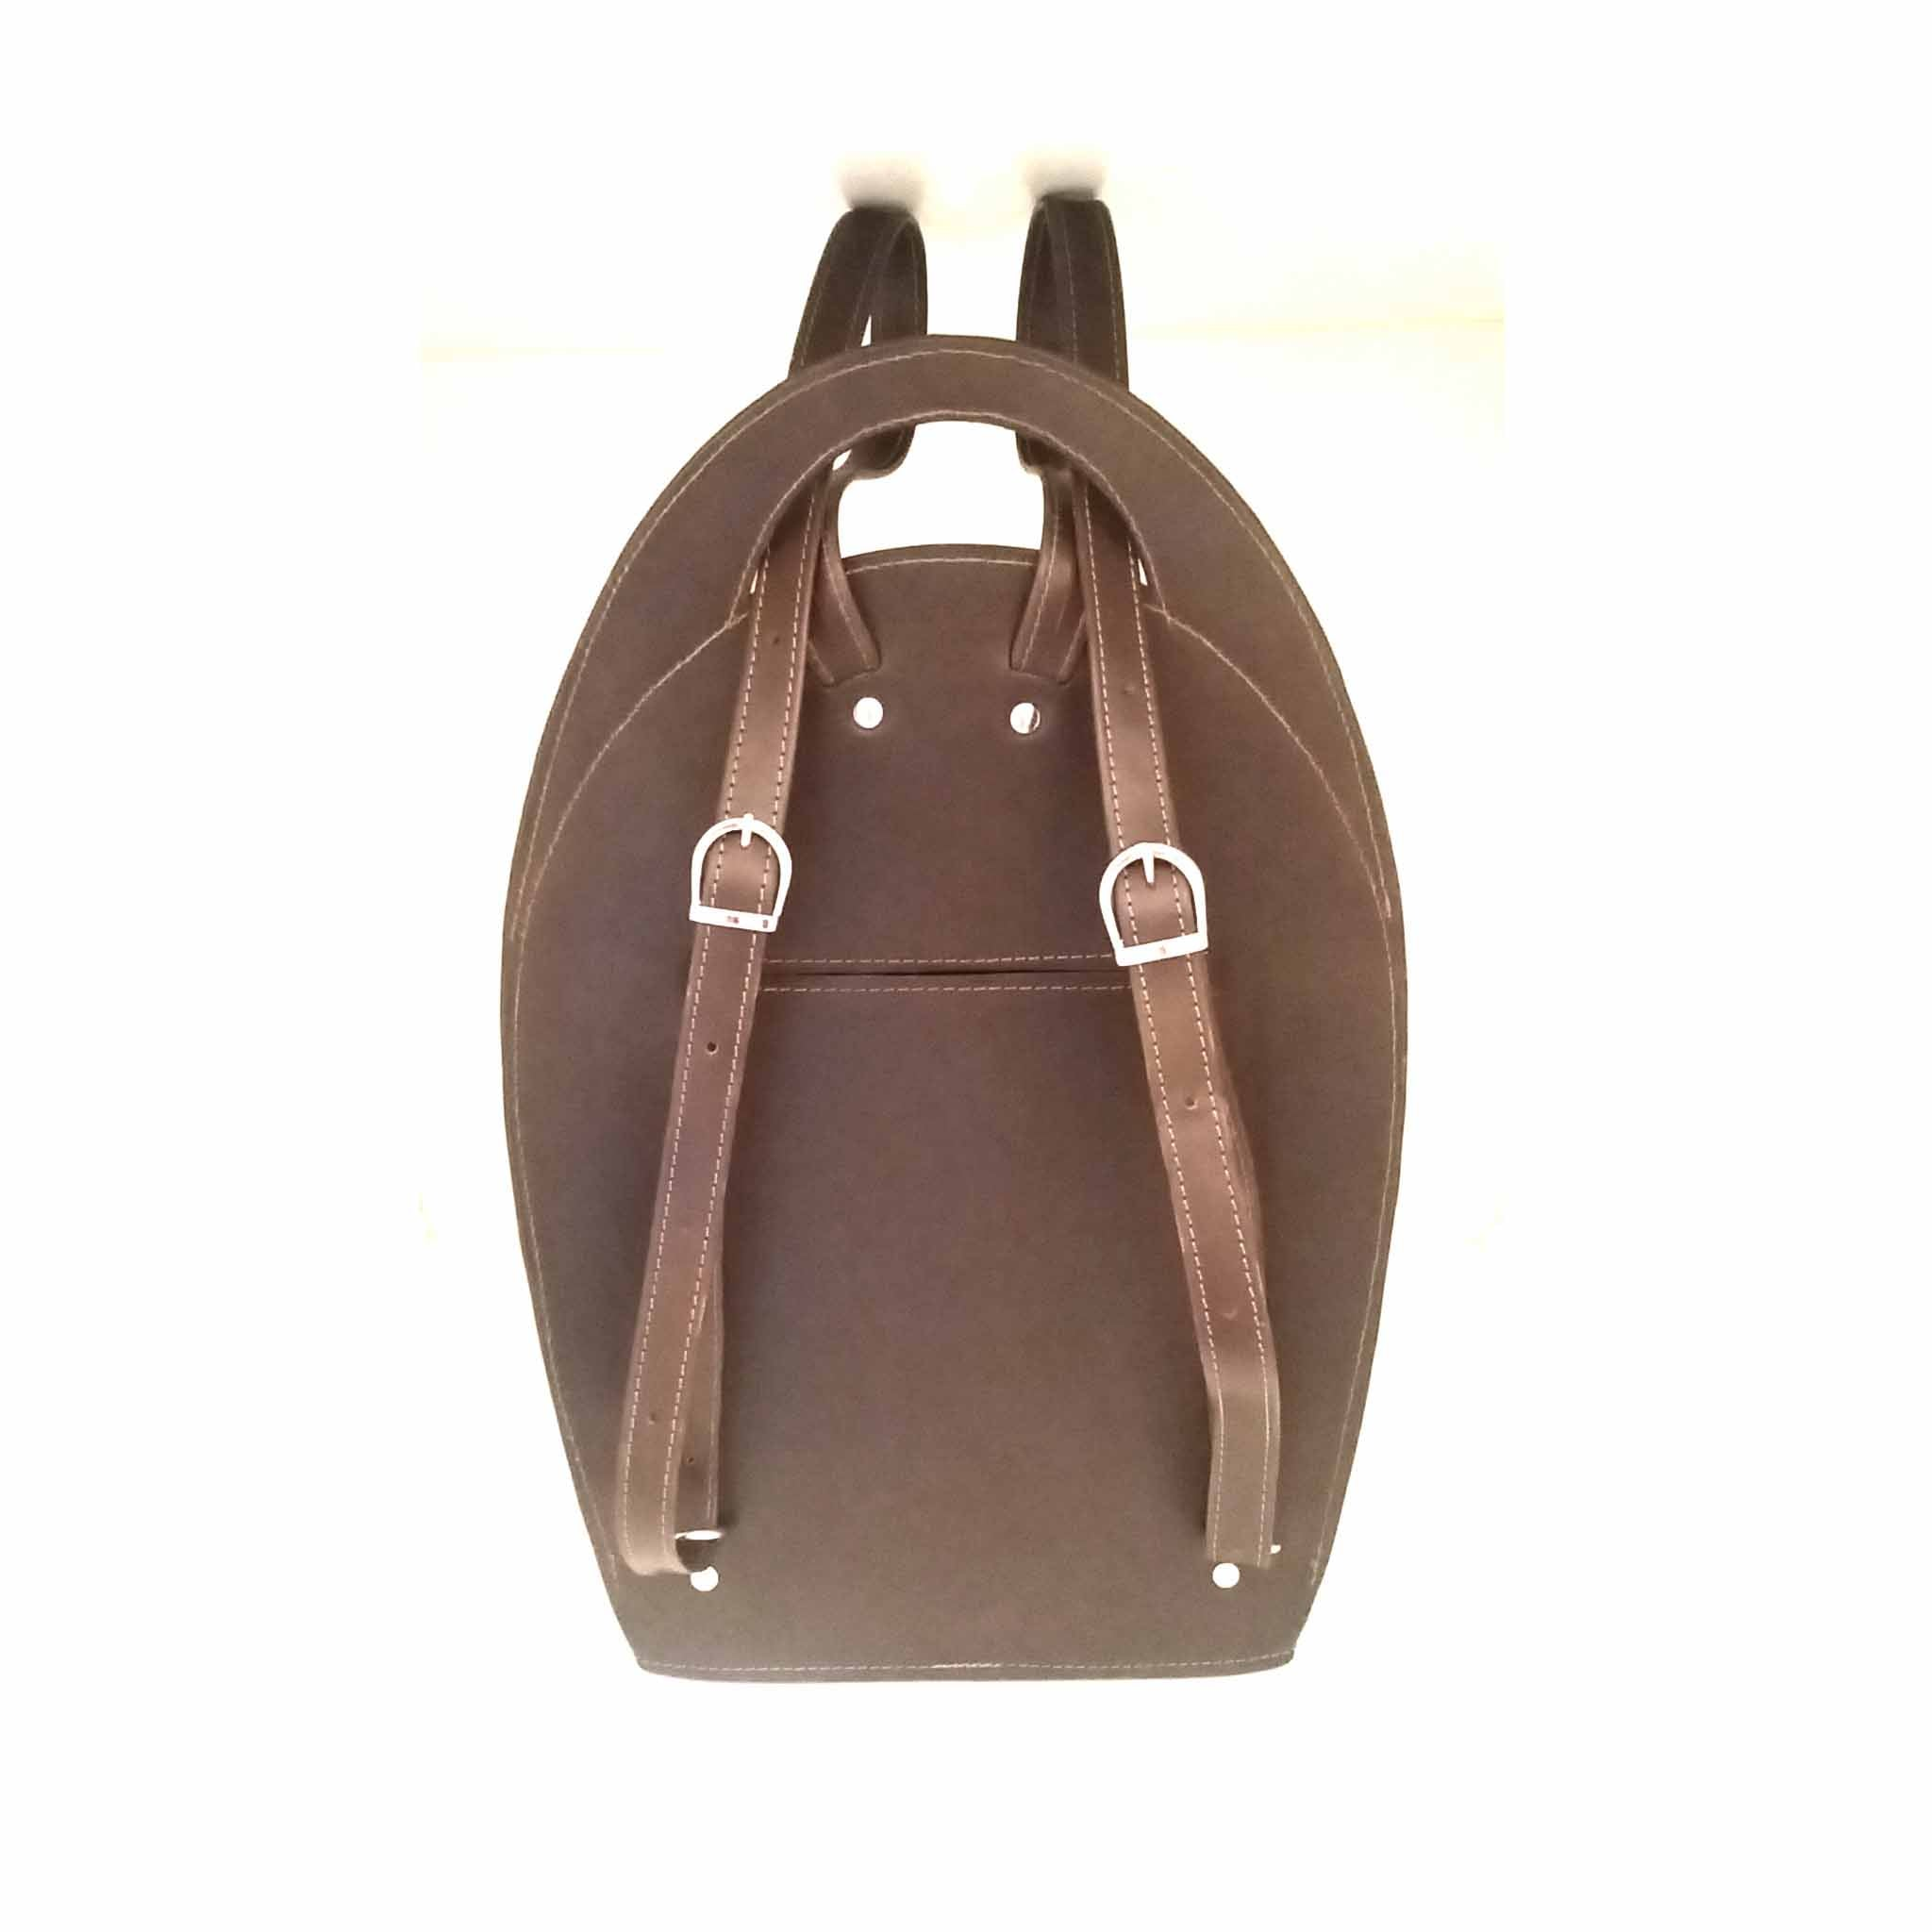 Luxury Brown Leather Backpack